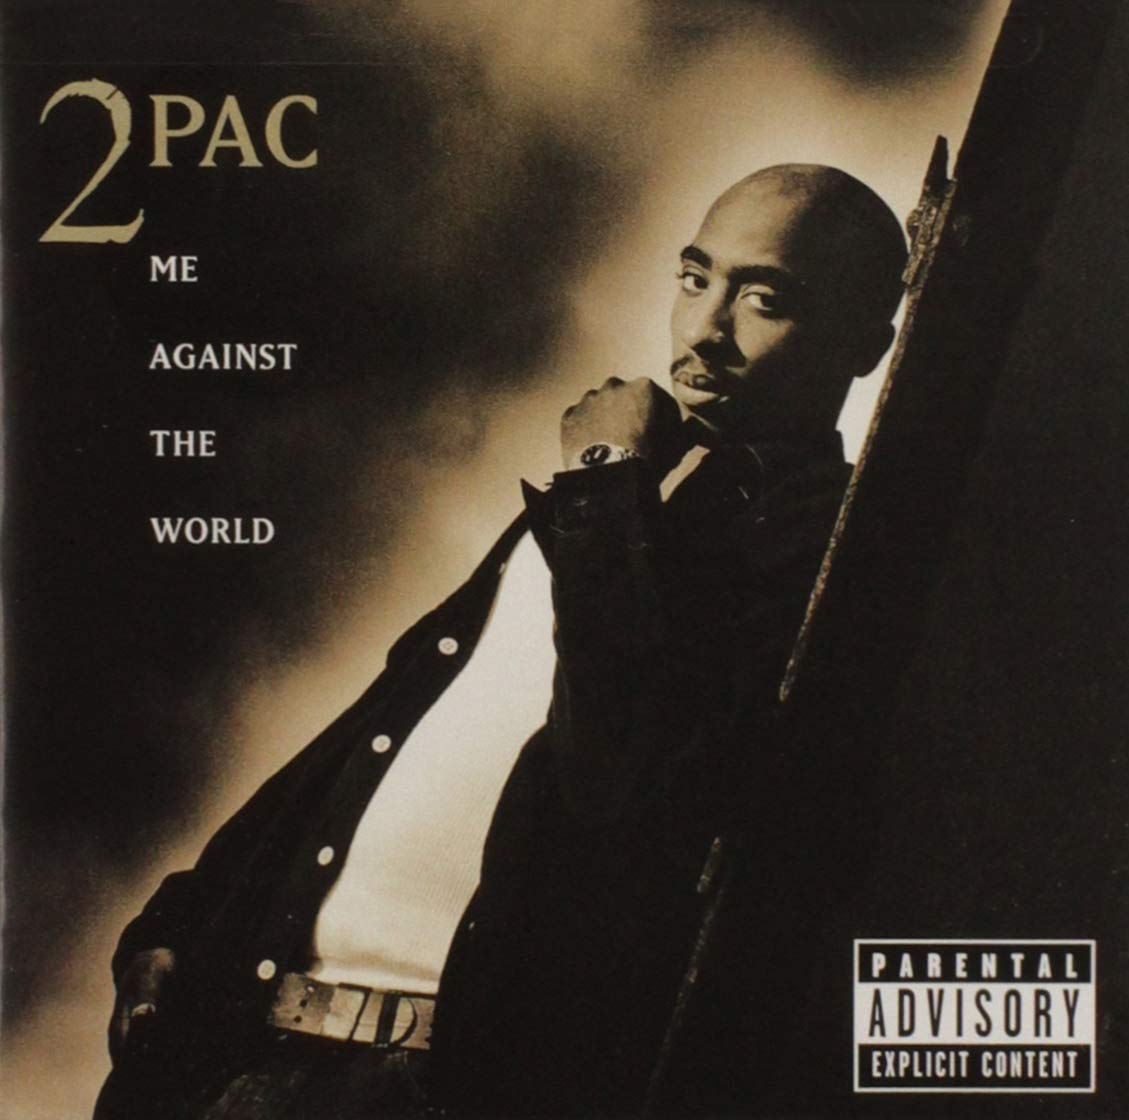 CD Shop - 2 PAC ME AGAINST THE WORLD